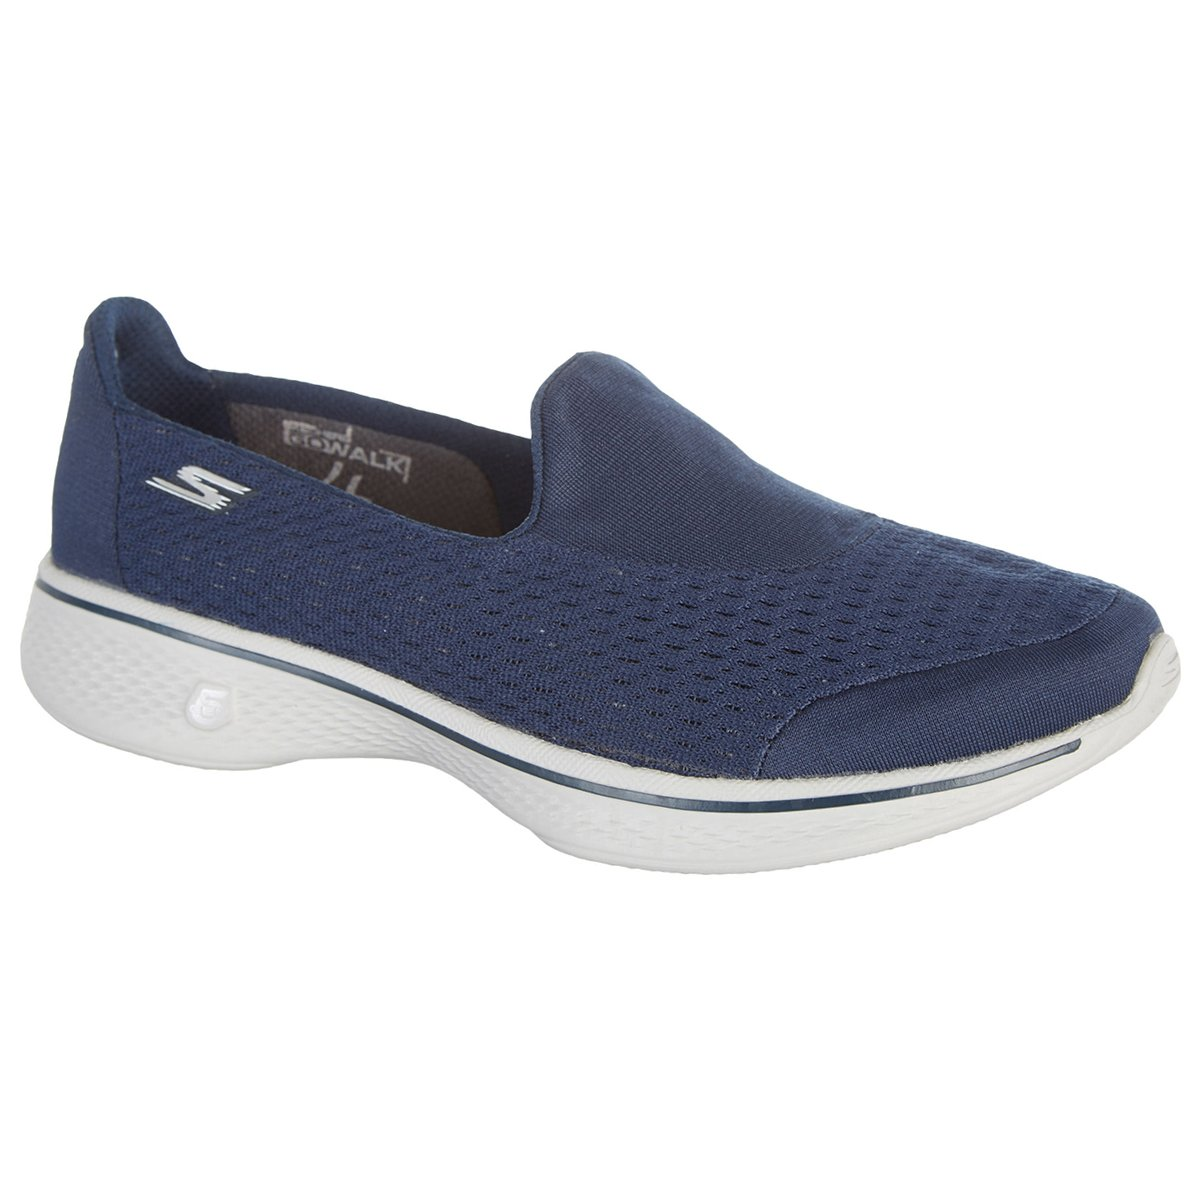 d24b1d7e4719 Skechers Ladies Go Walk 4  Pursuit  Trainers (Sizes 3-8) Memory Foam Slip  On Pumps  Amazon.co.uk  Shoes   Bags